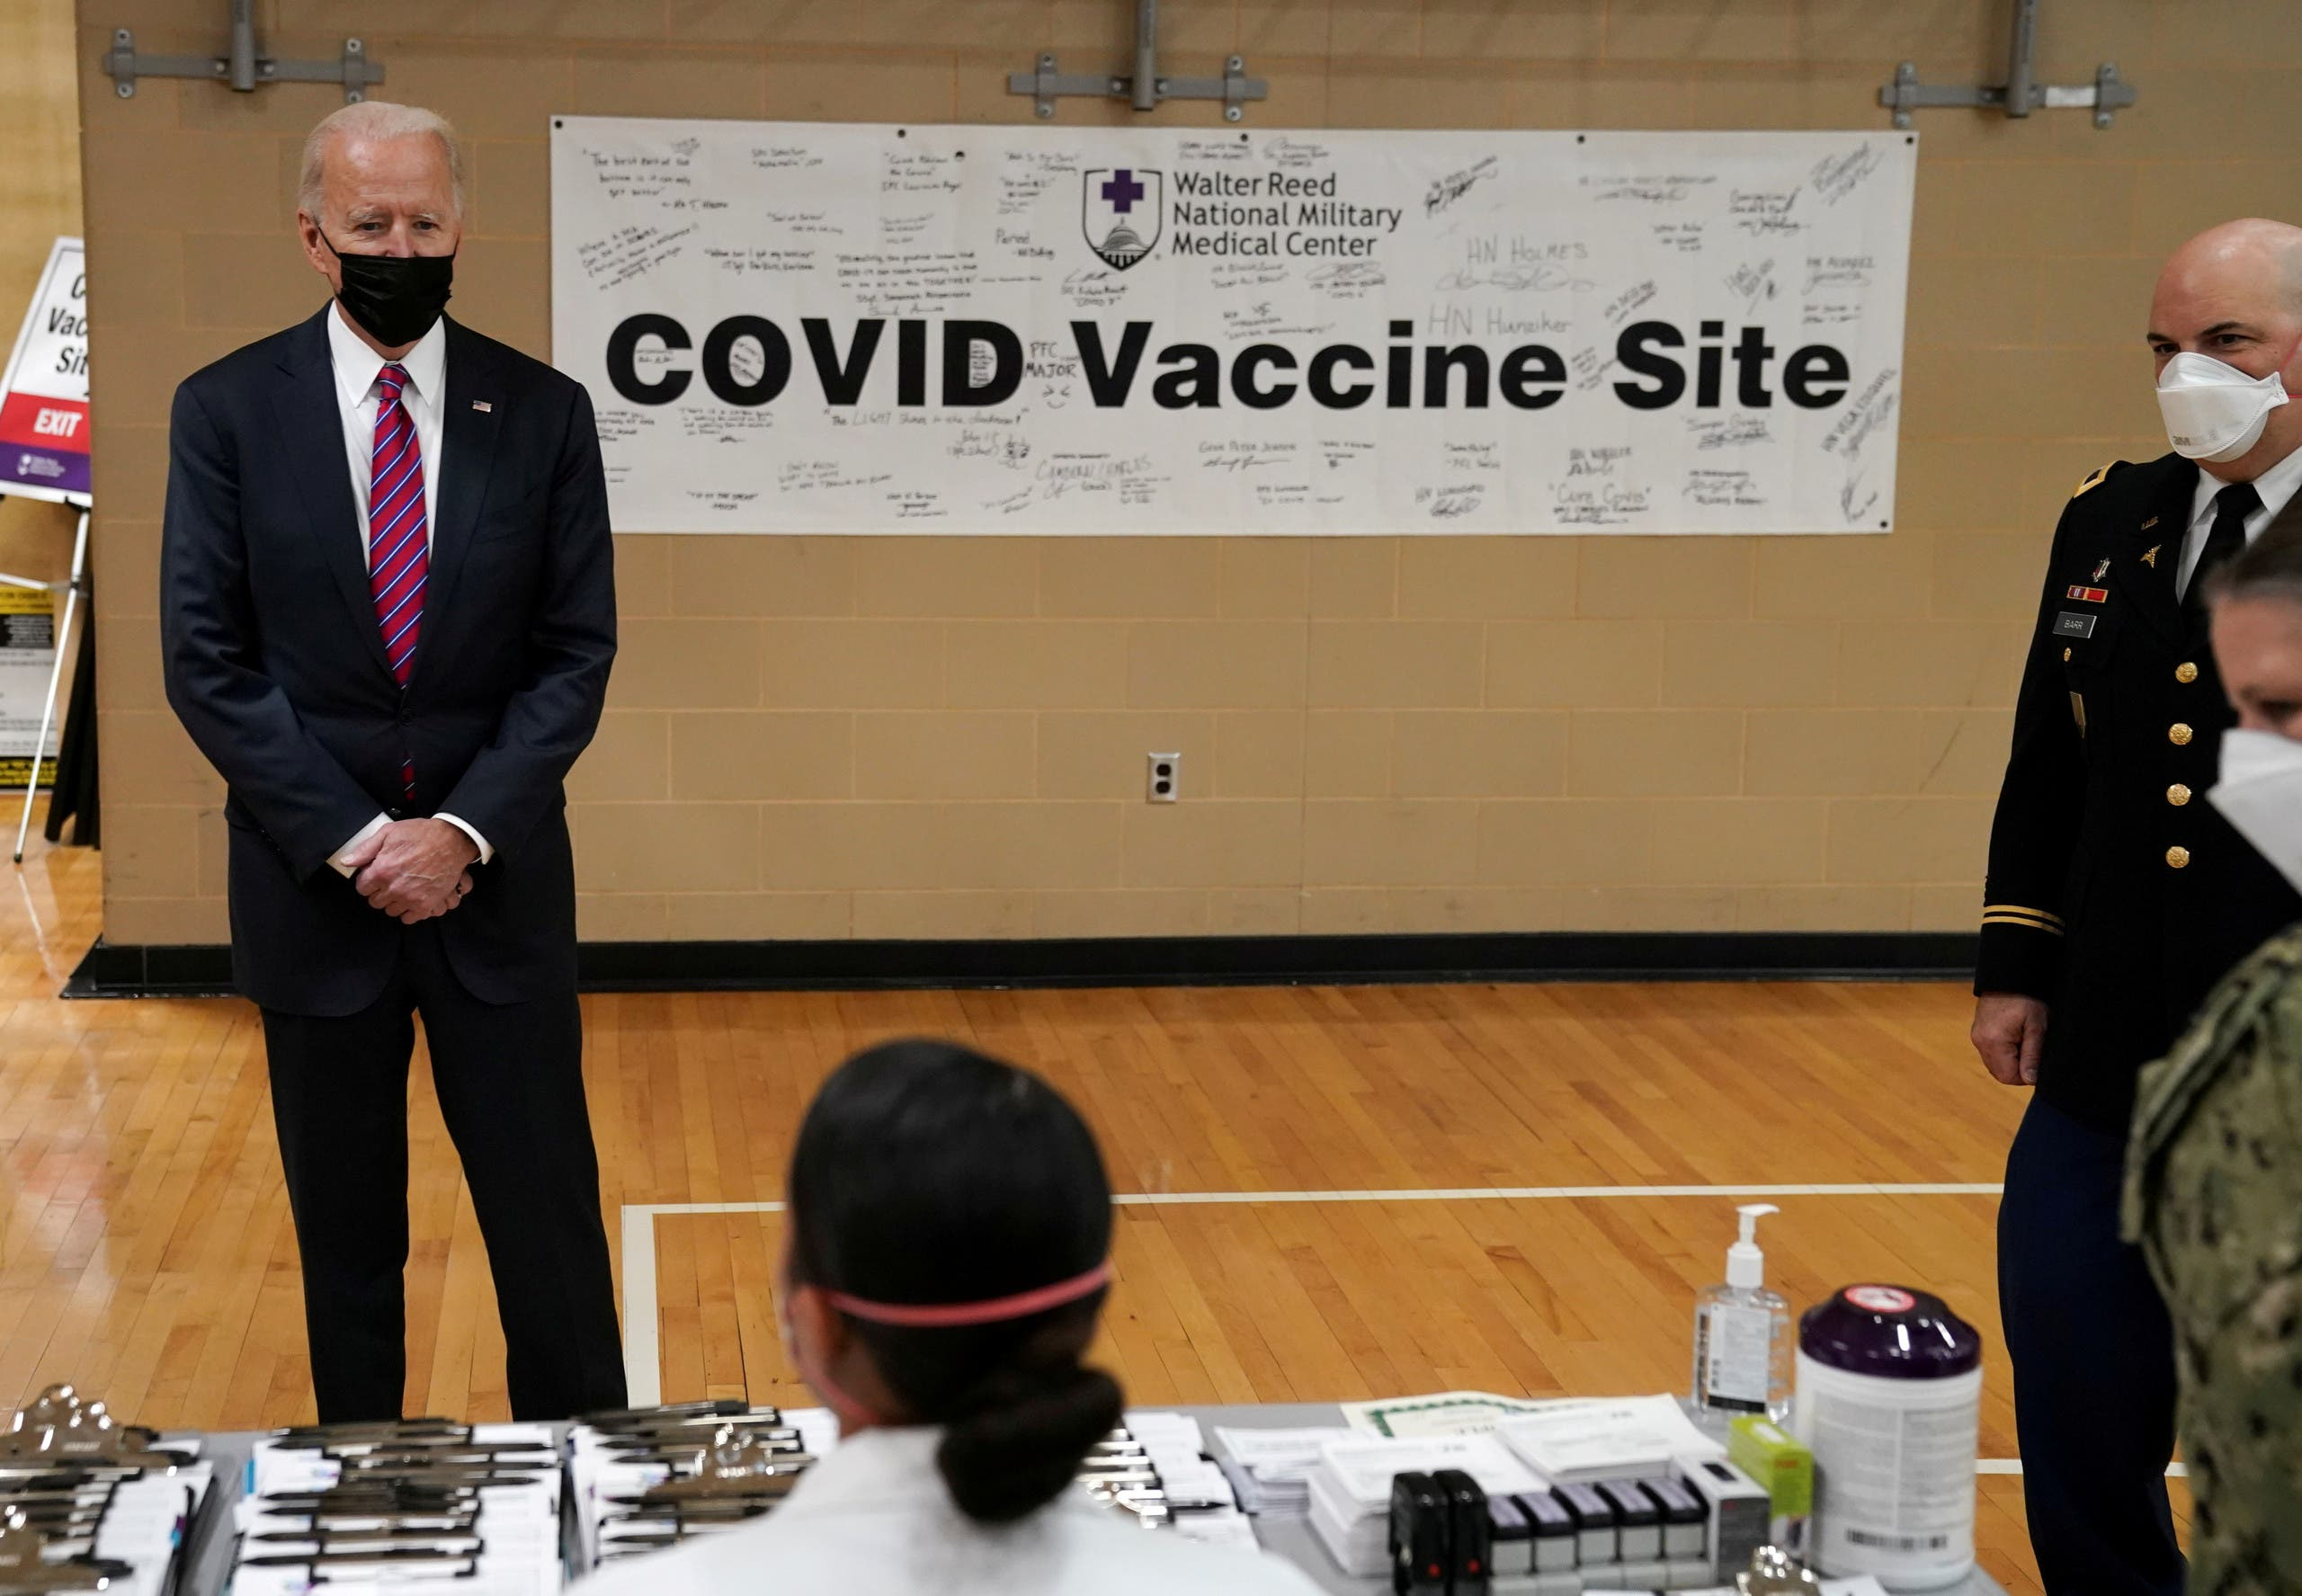 U.S. President Joe Biden visits a coronavirus disease (COVID-19) vaccination site during a visit to Walter Reed National Military Medical Center in Bethesda, Maryland, U.S., January 29, 2021. (Reuters)